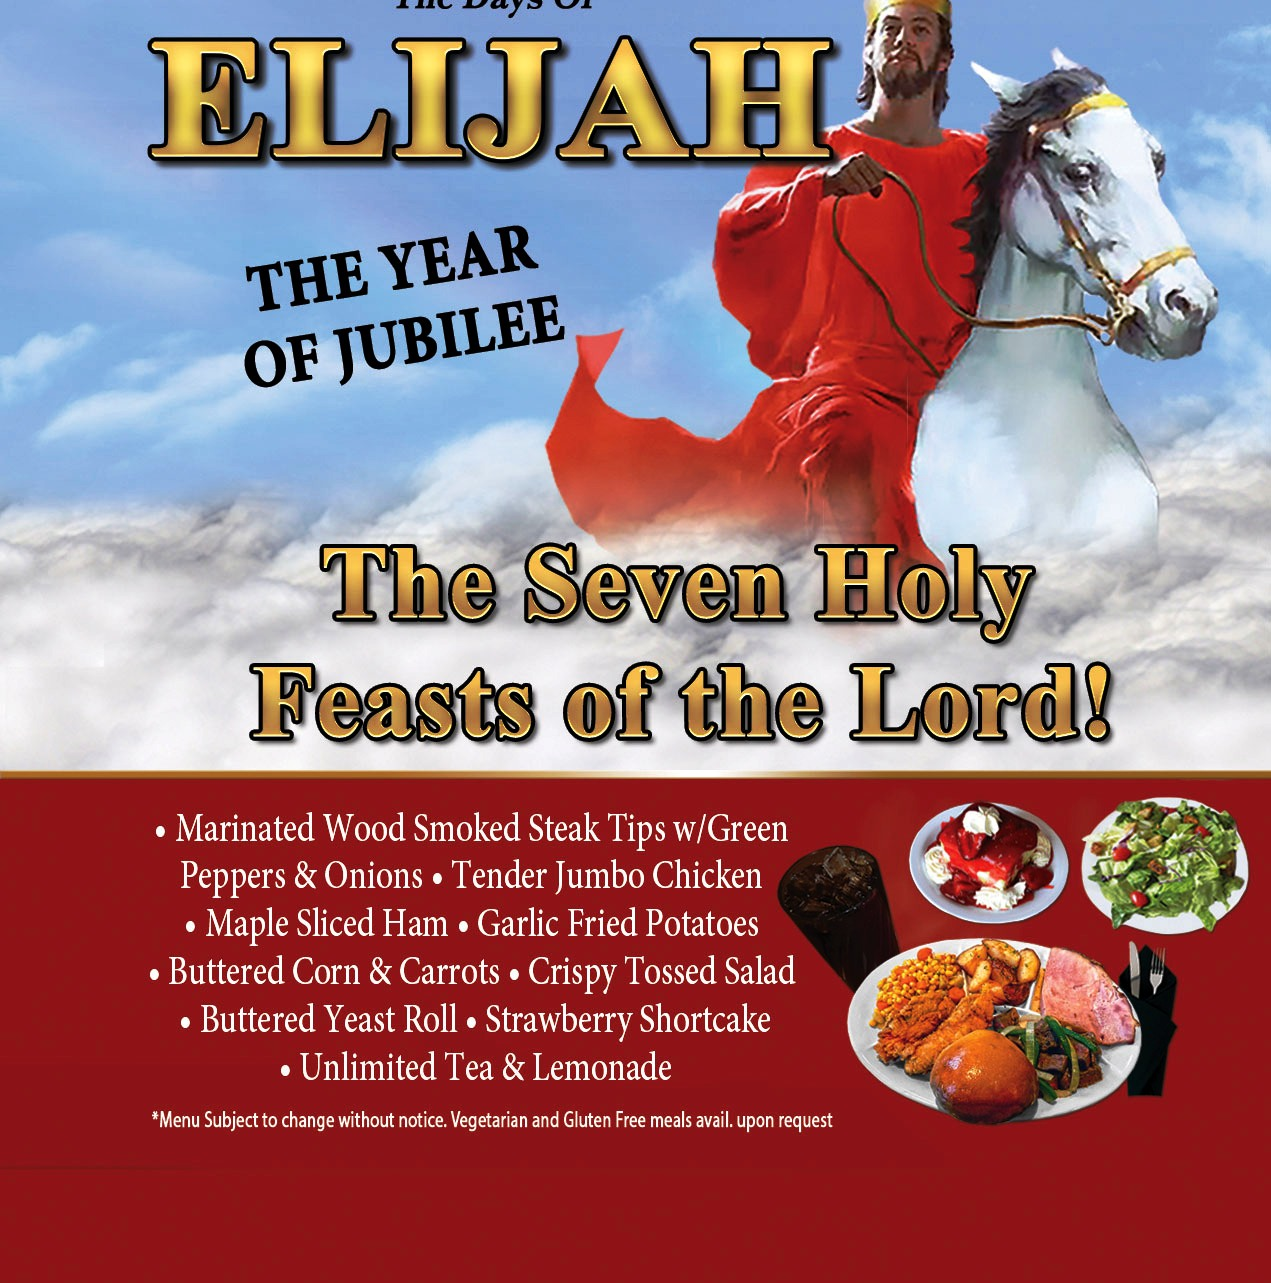 The Biblical Times Dinner Theater Days of Elijah is a wonderful story of this famous Biblical character.